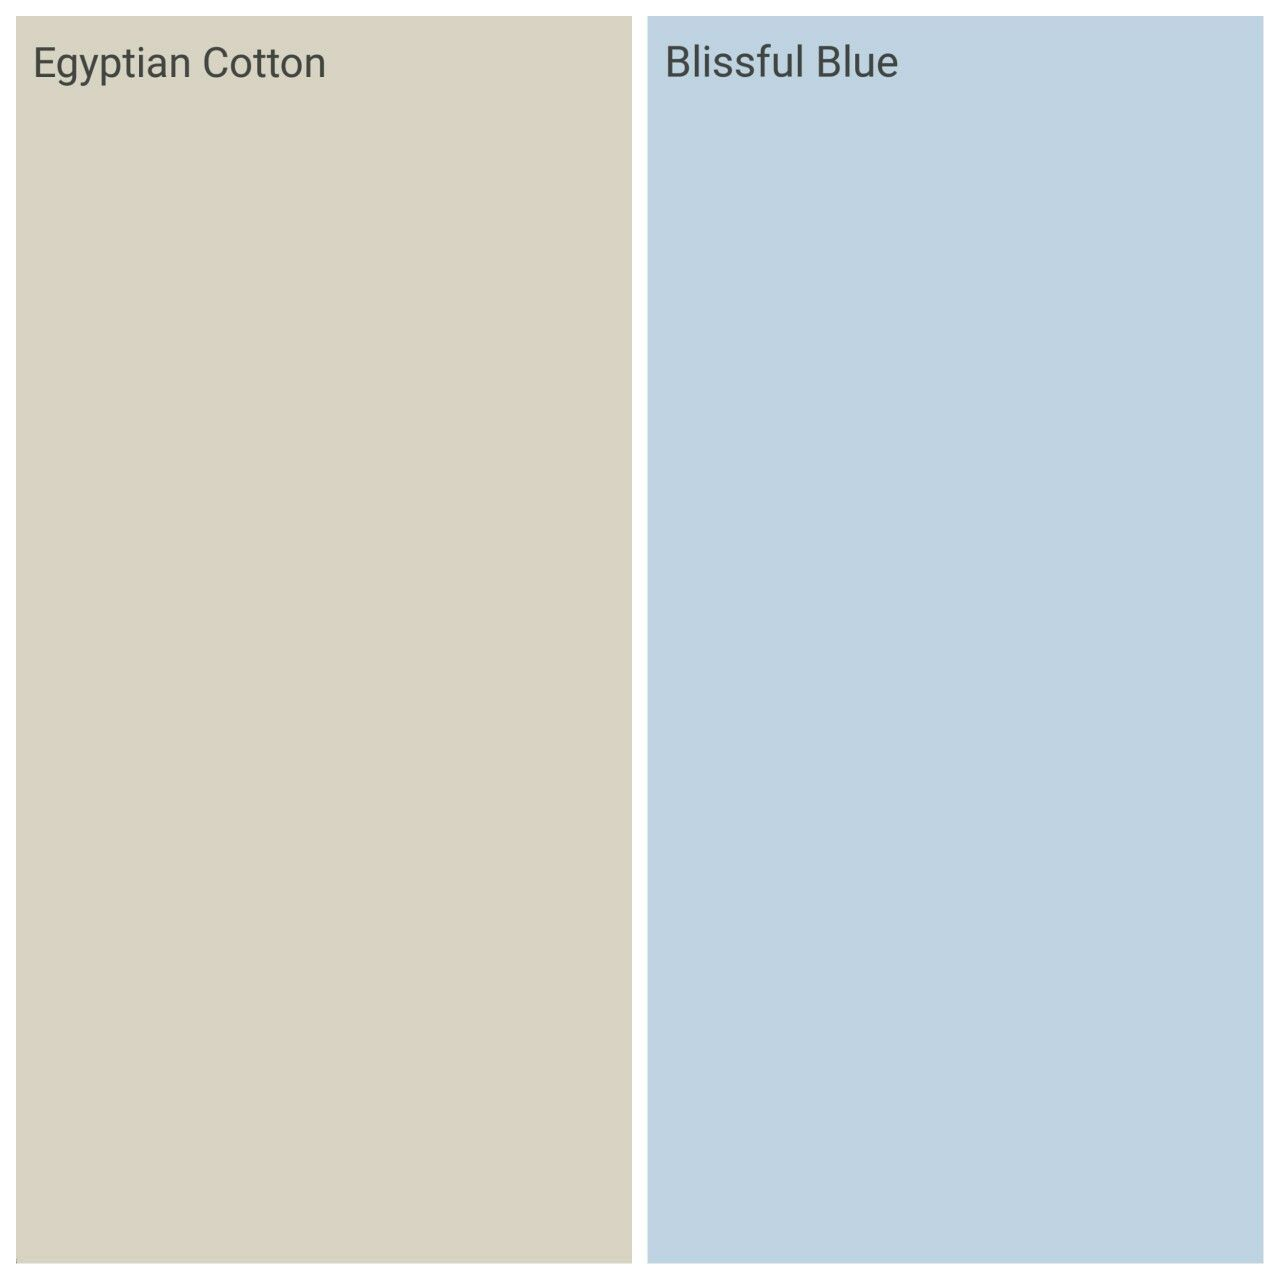 Dulux Blissful Blue And Egyptian Cotton Guest Bedroom